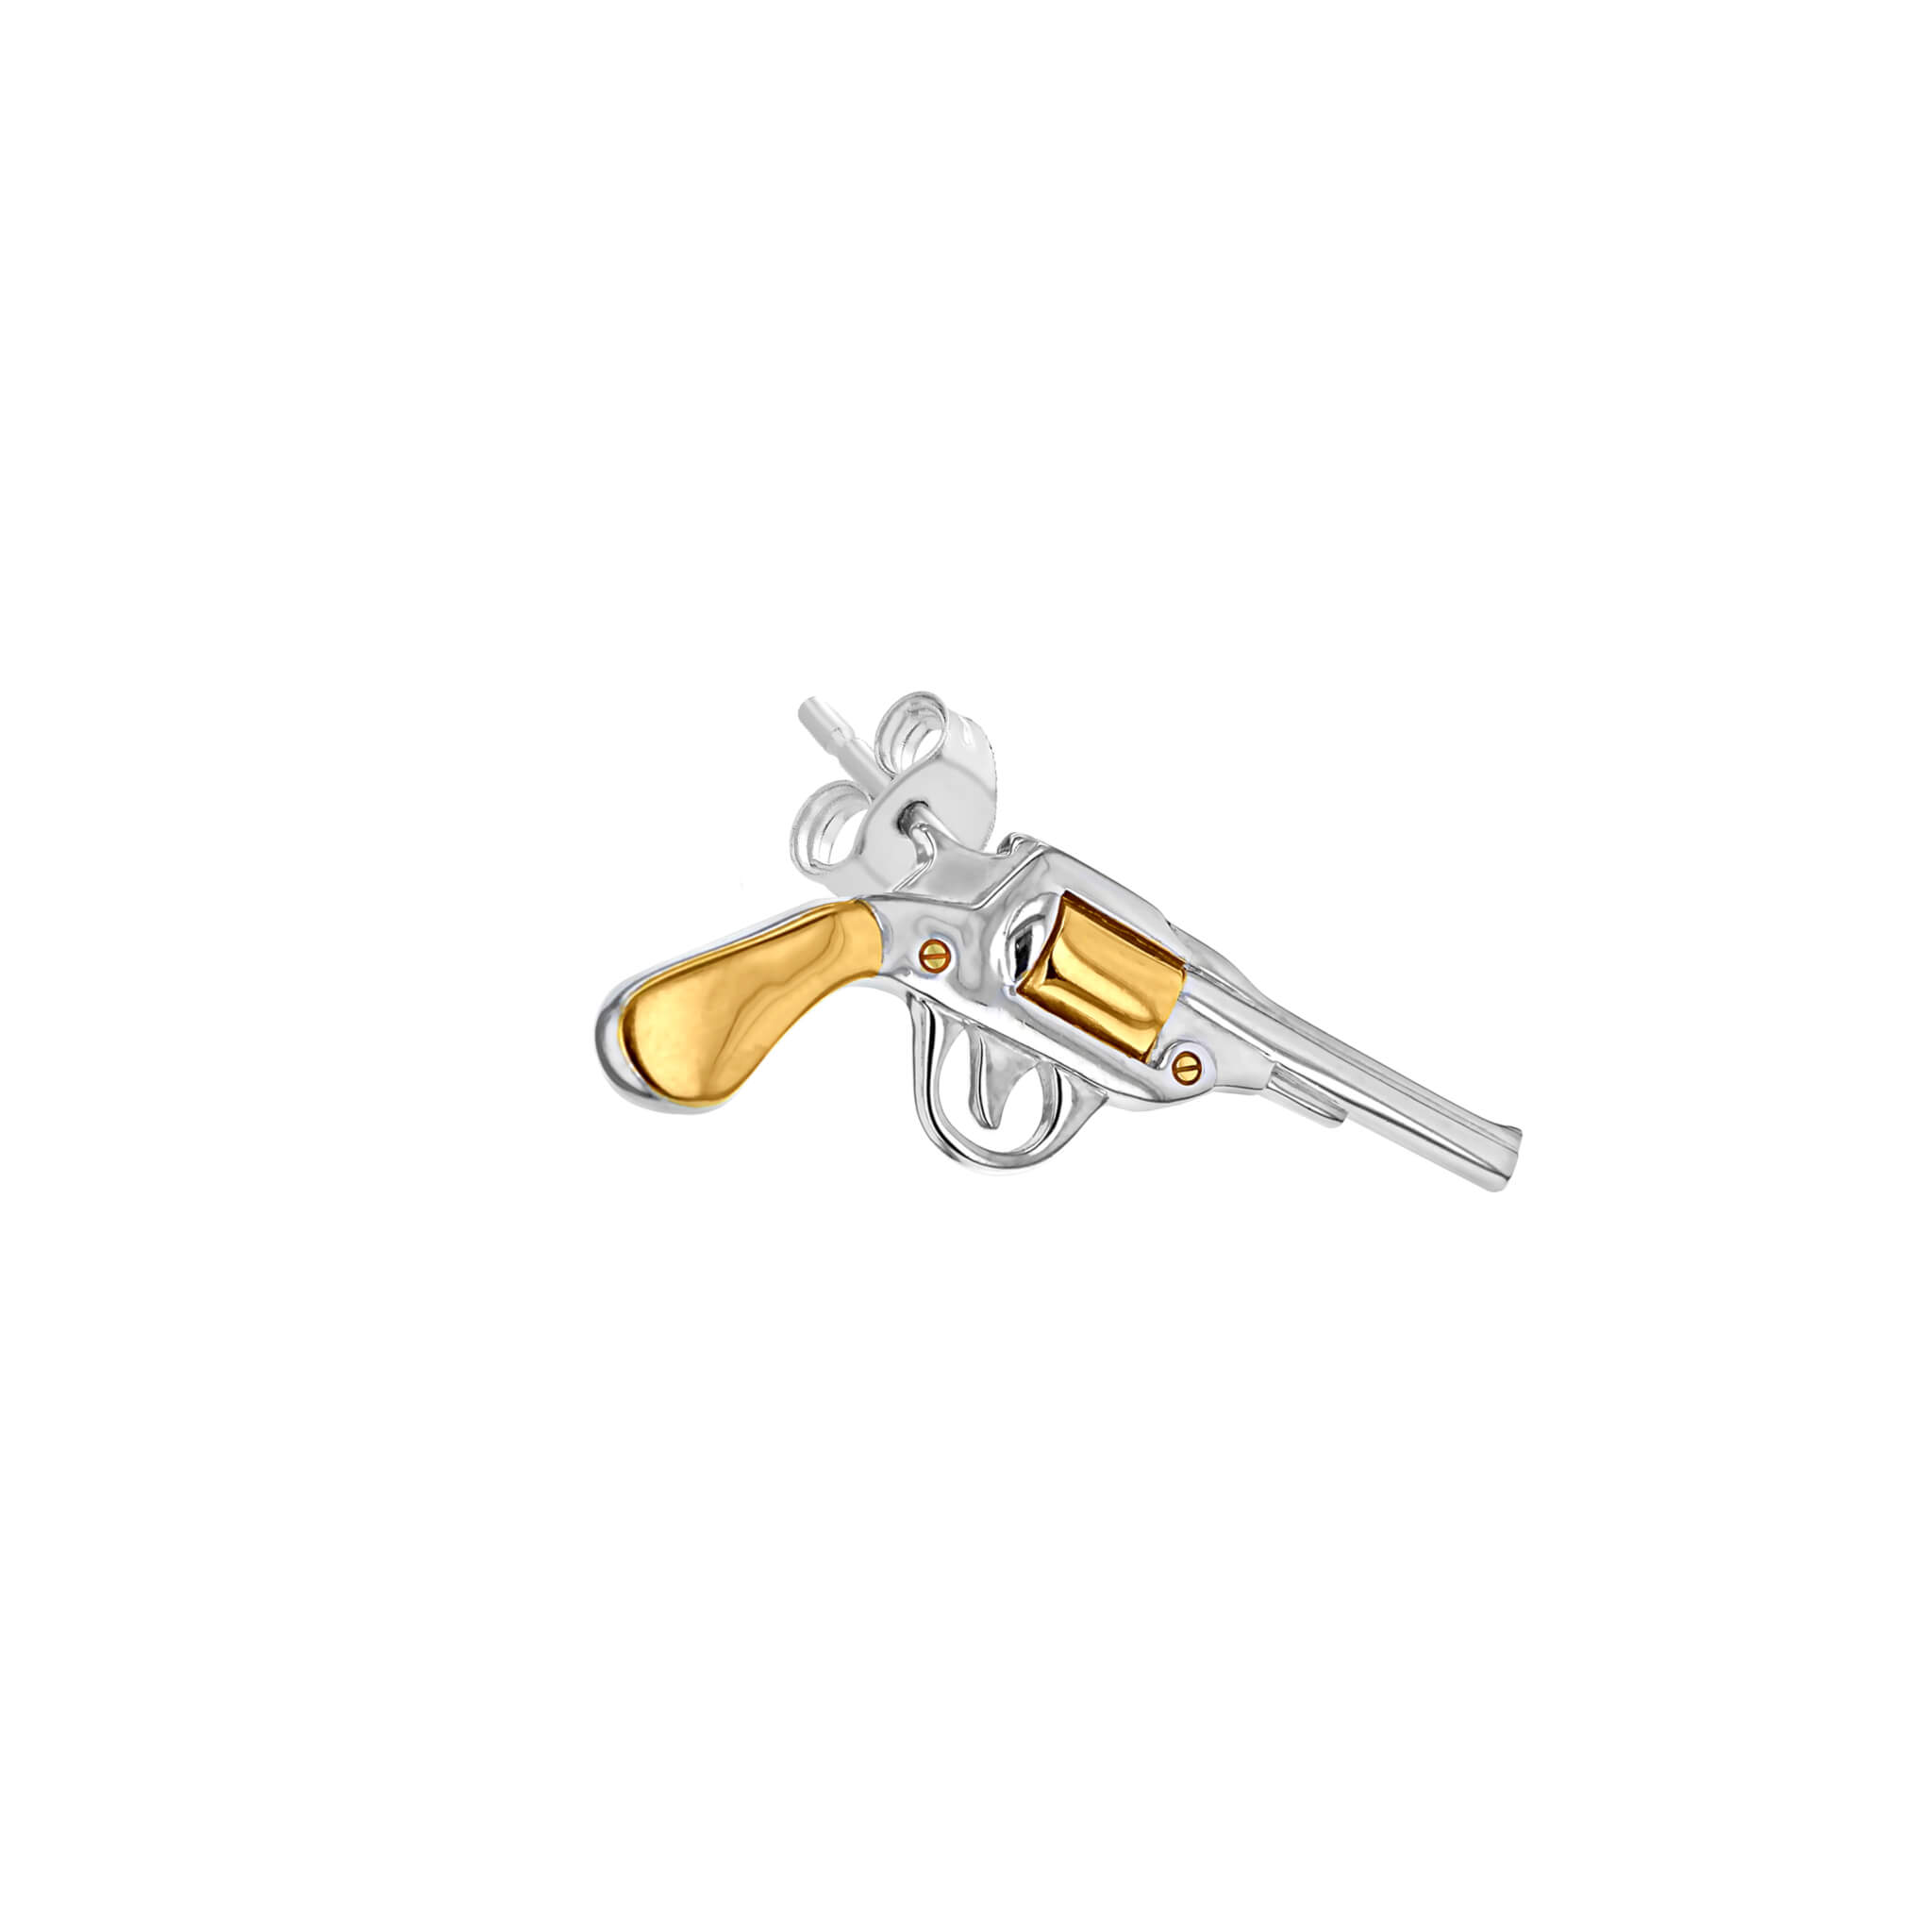 Stud 2-Tone Silver & Gold Pistol for right ear